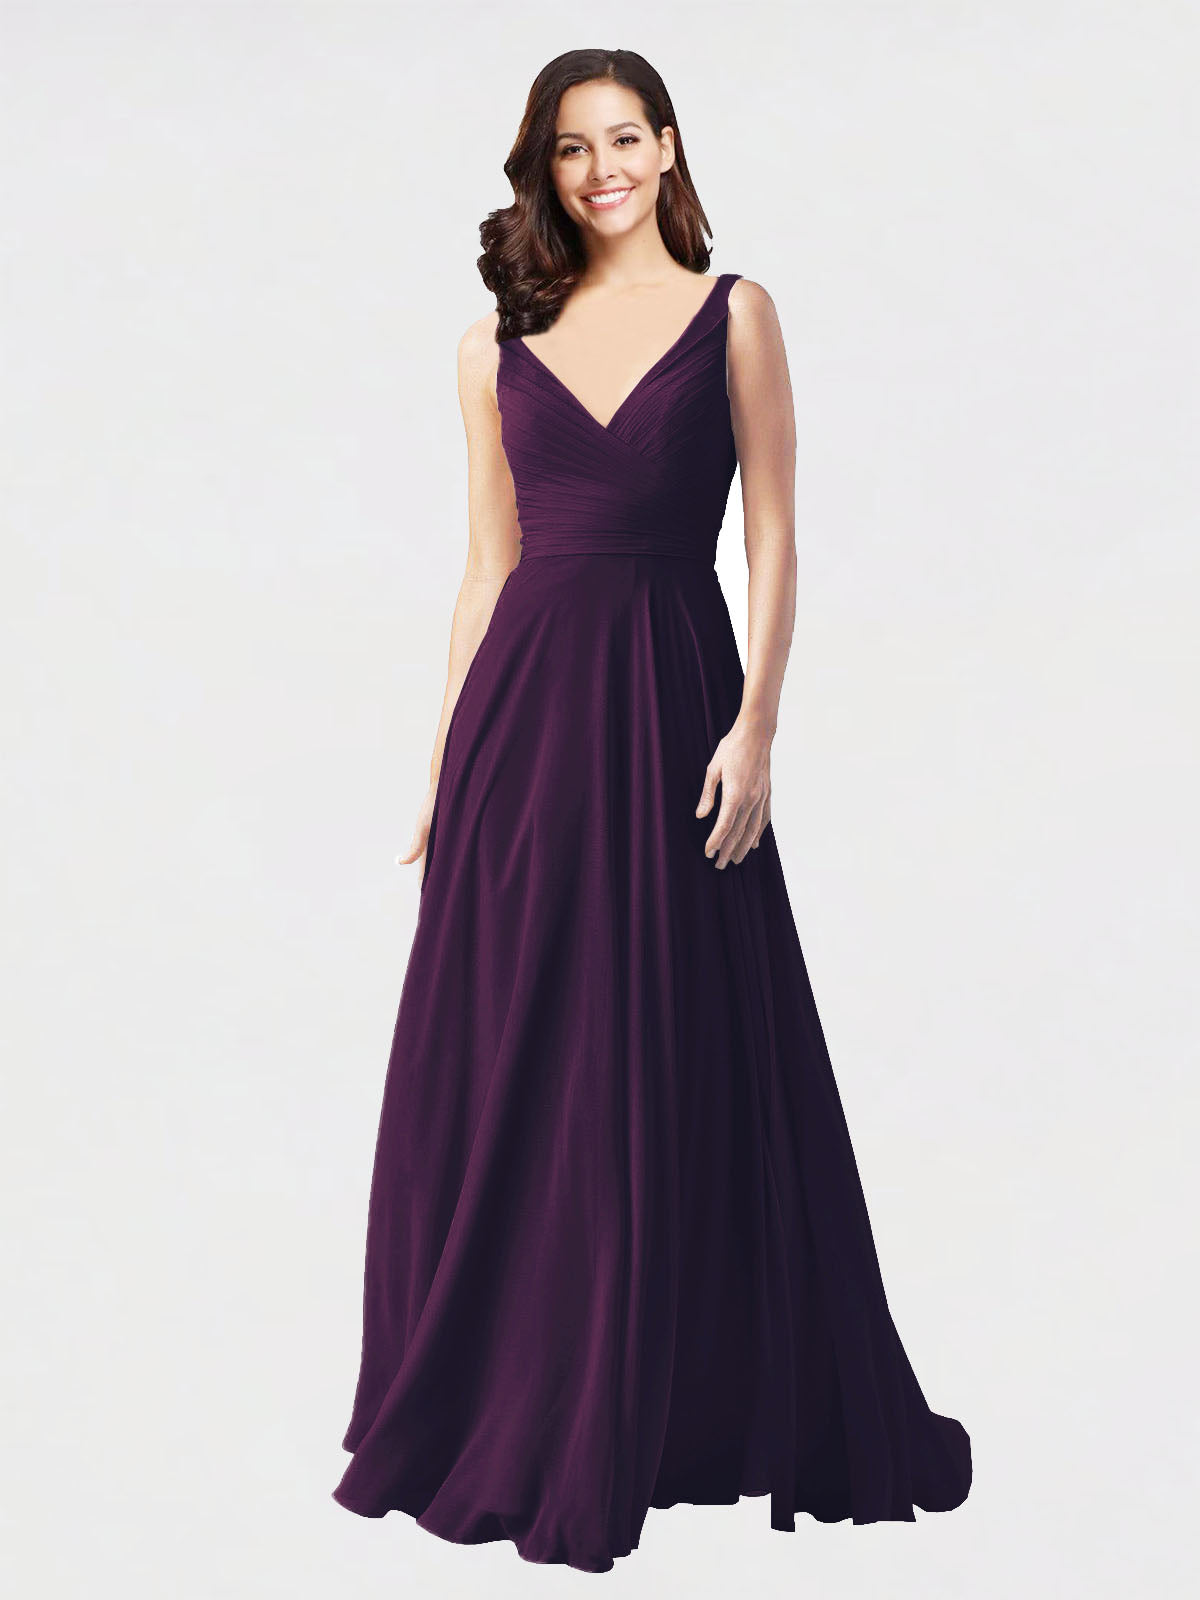 Long A-Line V-Neck Sleeveless Grape Chiffon Bridesmaid Dress Bernice